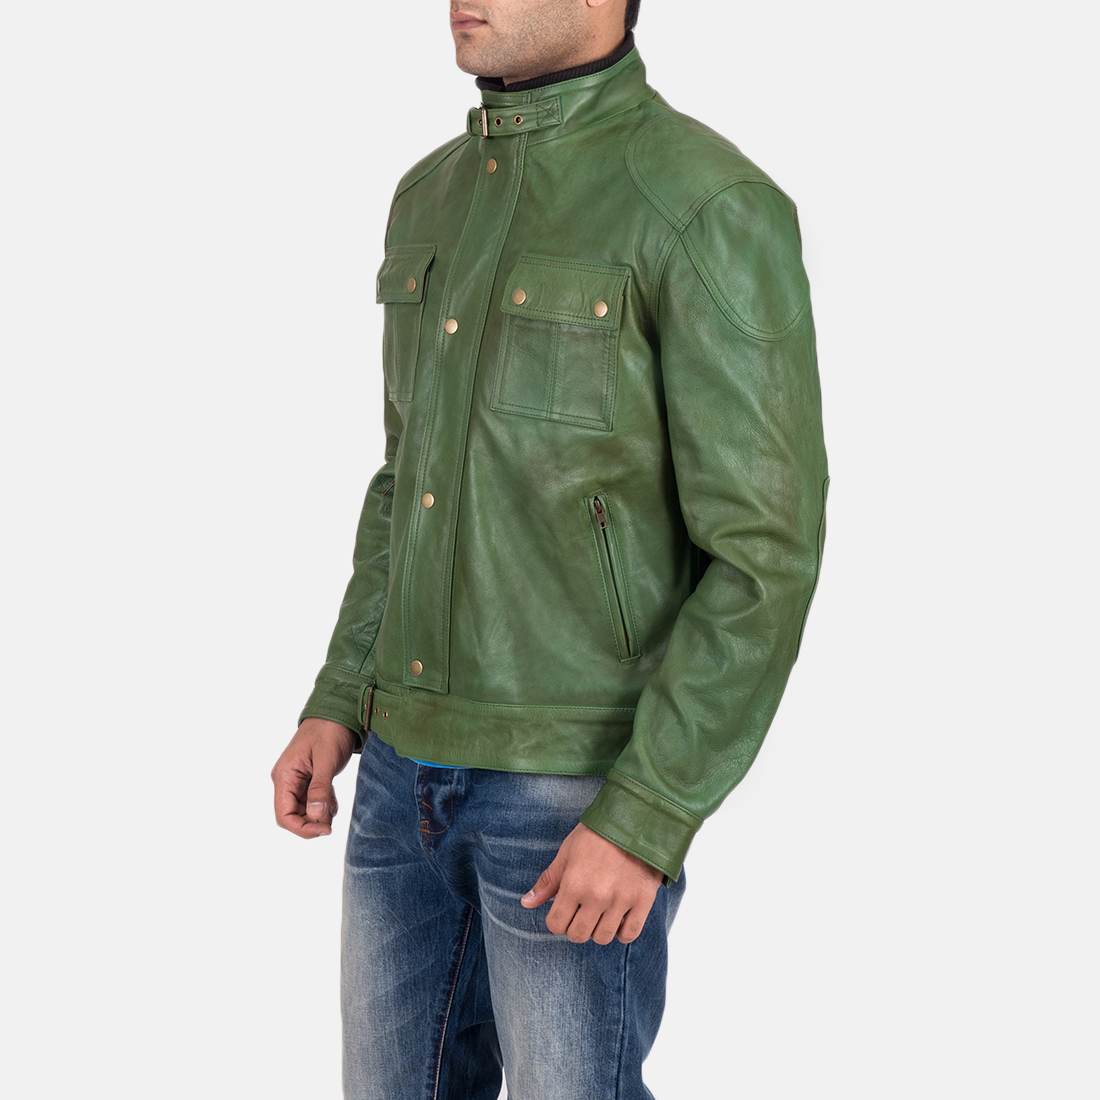 Men's Krypton Distressed Green Leather Jacket 4